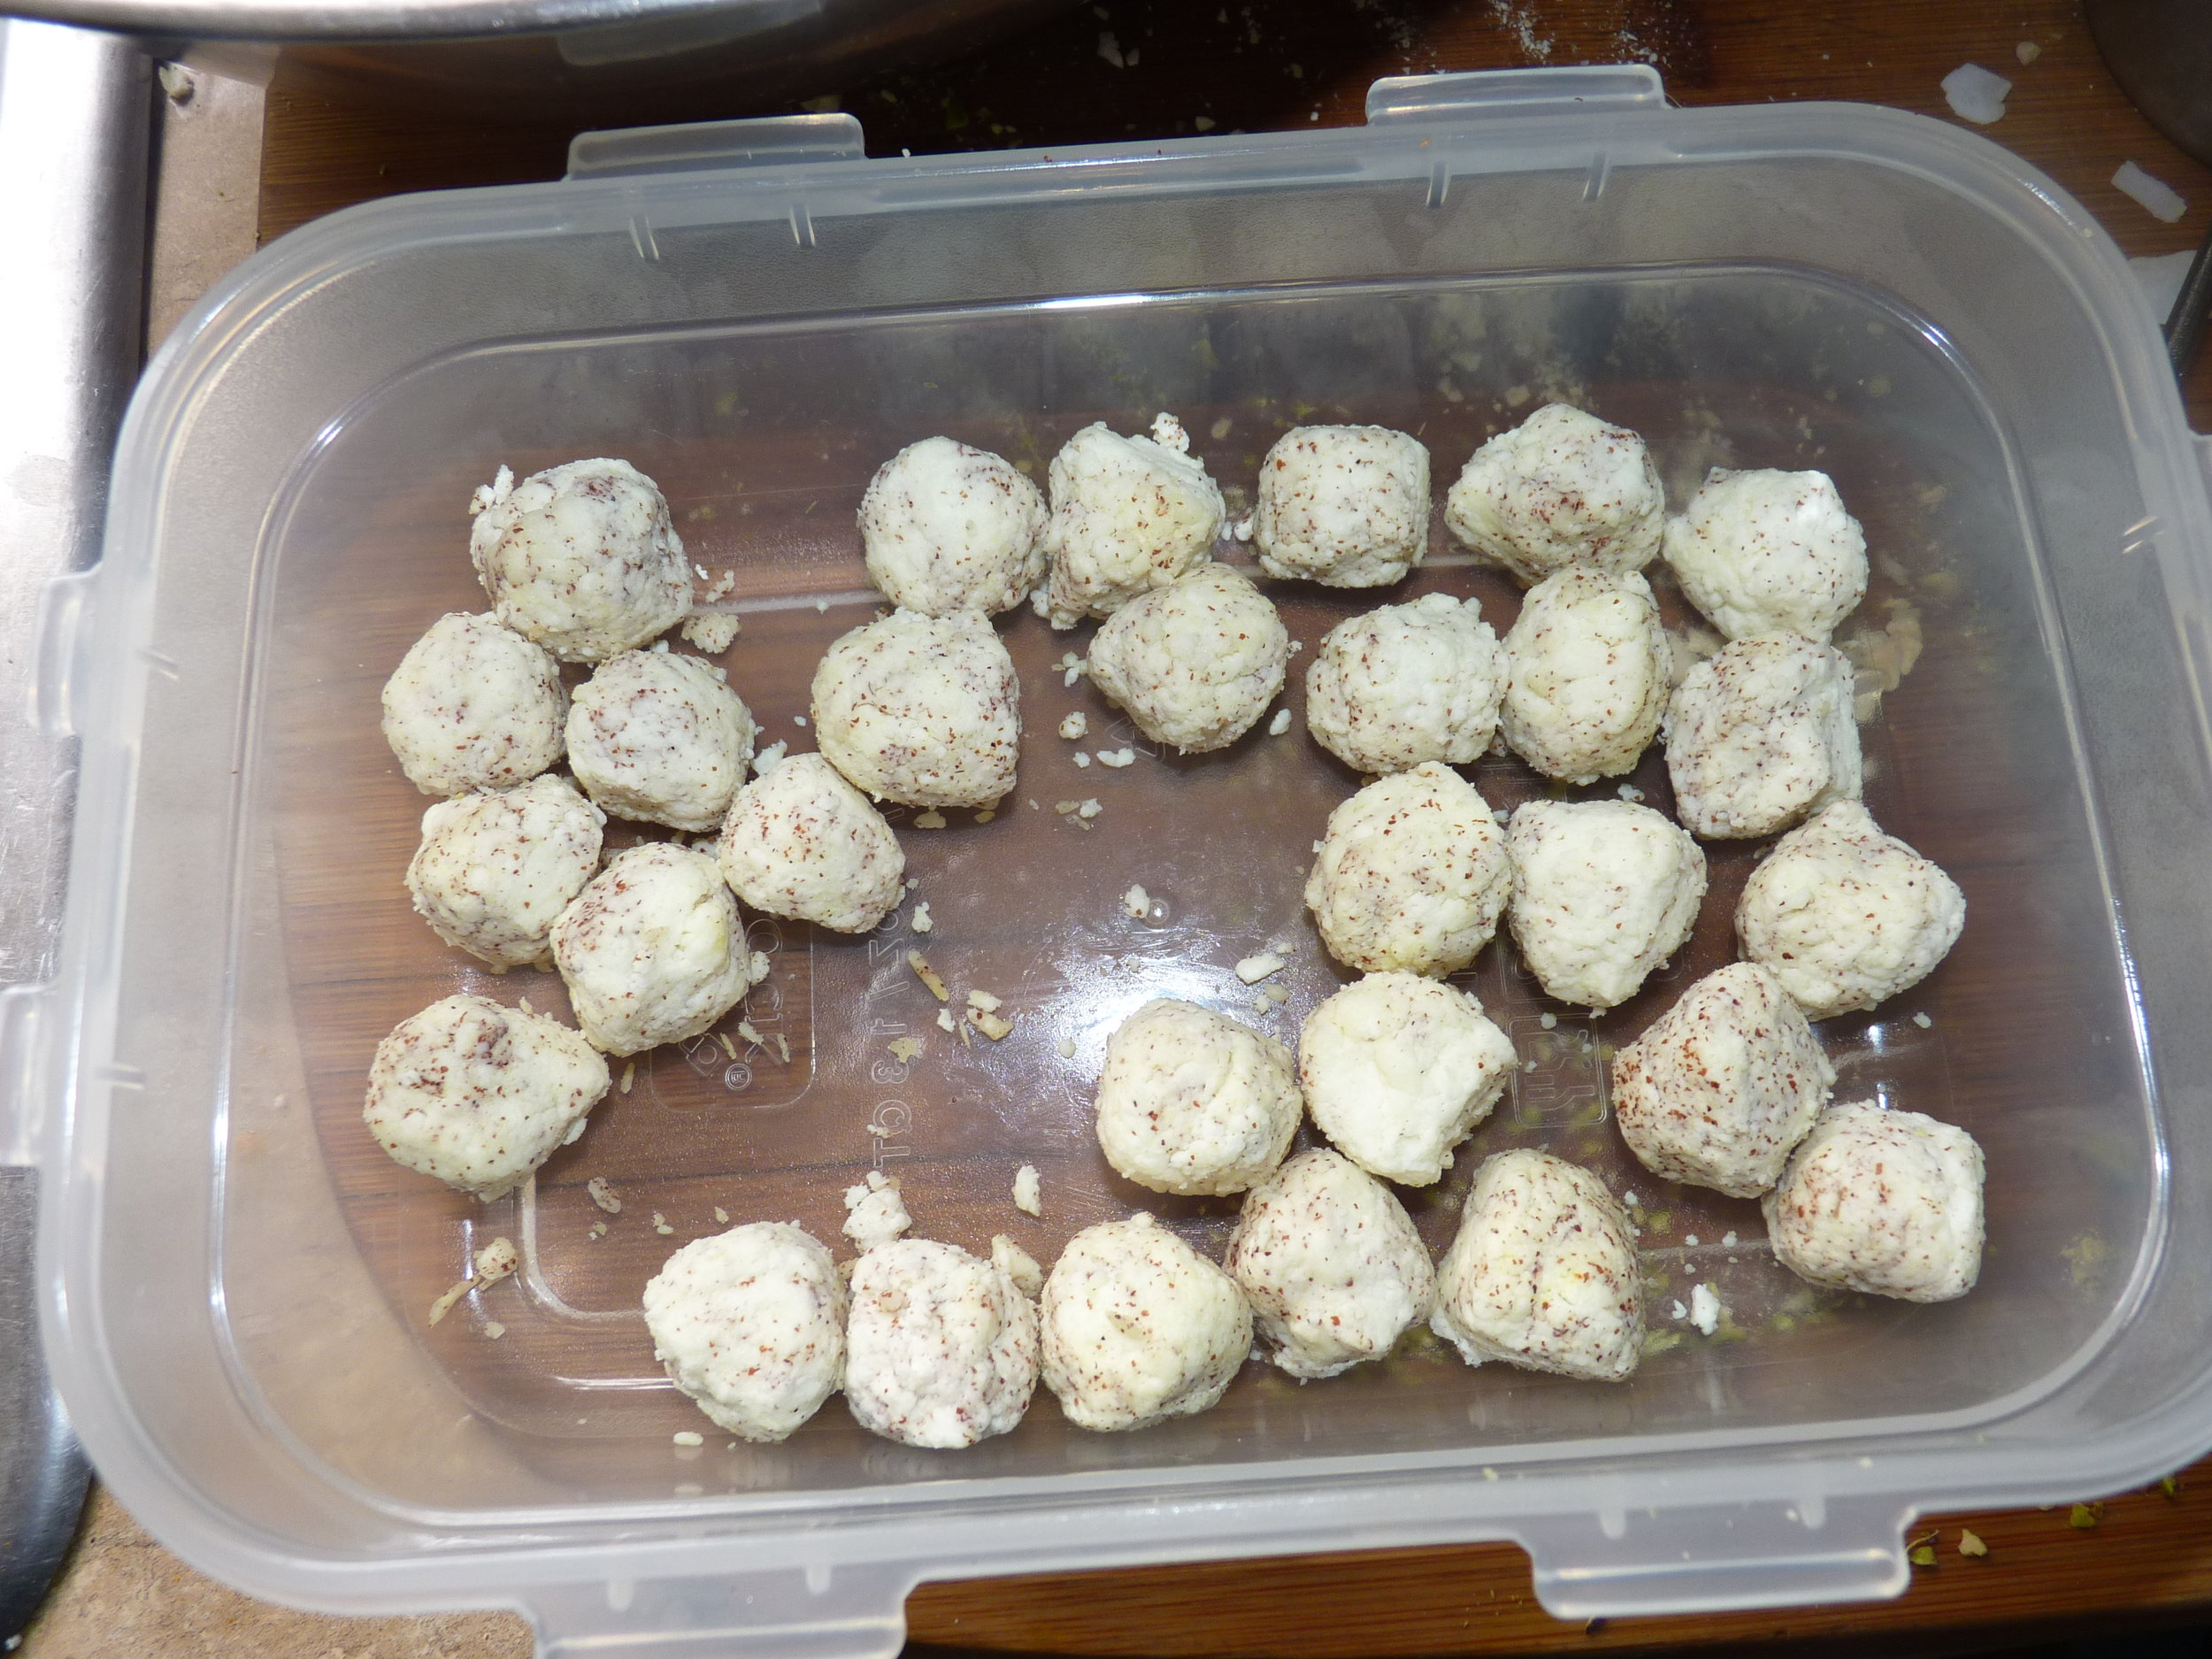 Roll the chenna cheese into balls with ragi (or rice flour) as a binder